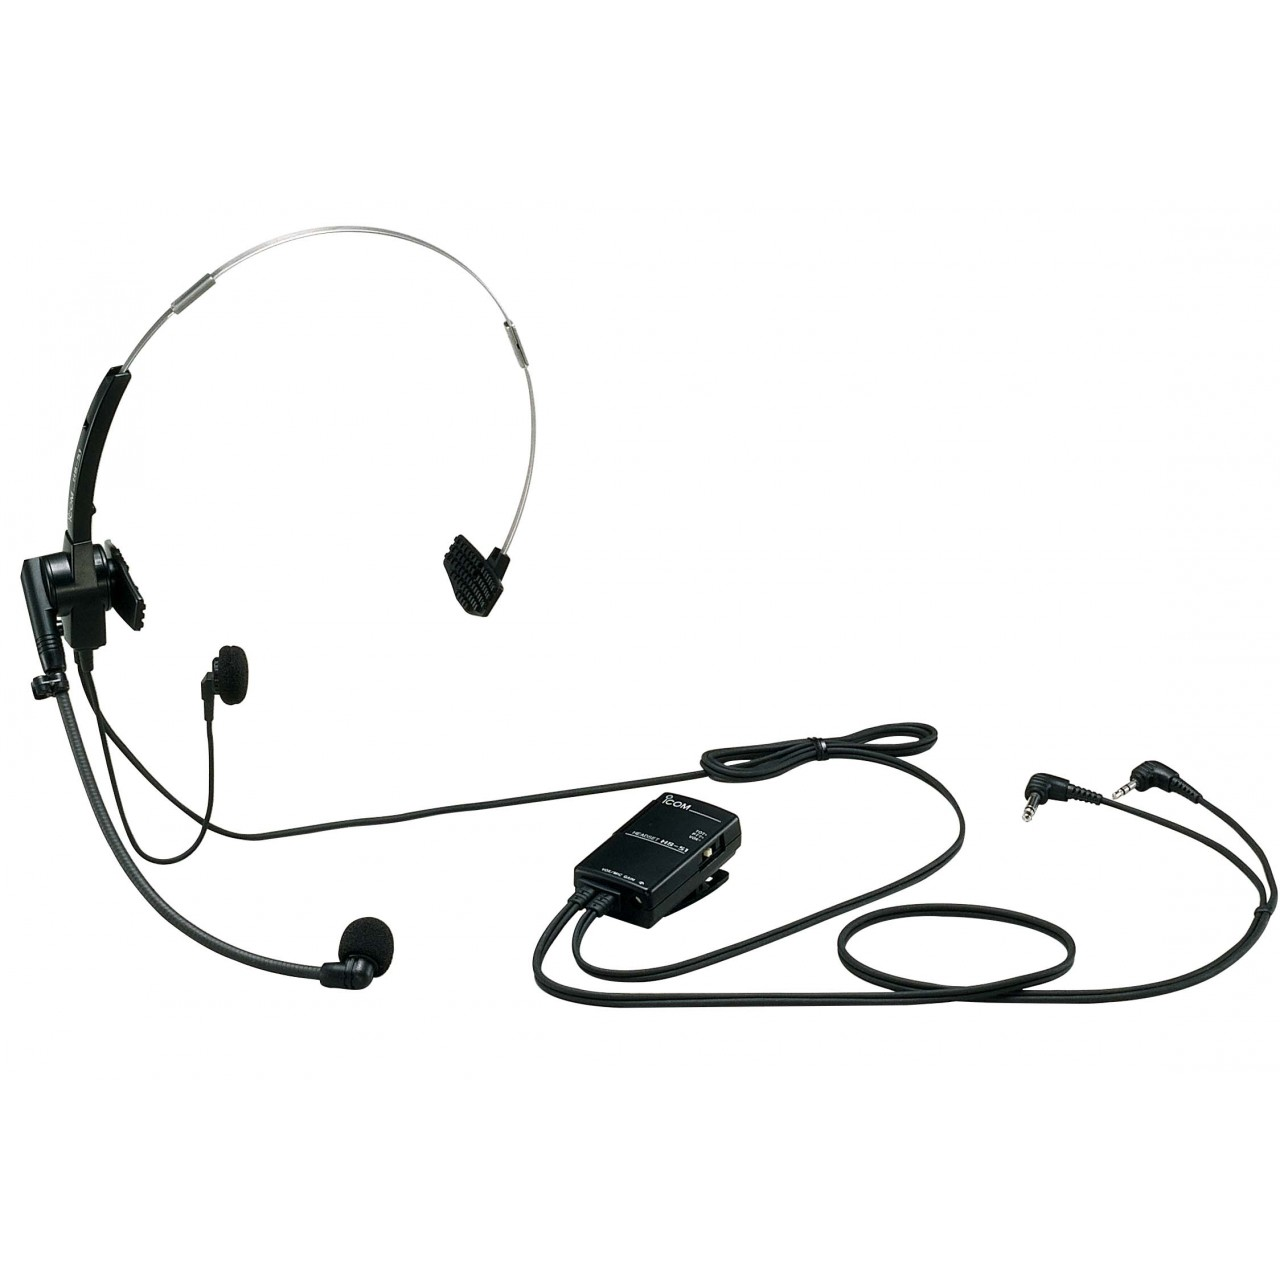 HS-85 Headsets and earphones - ICOM